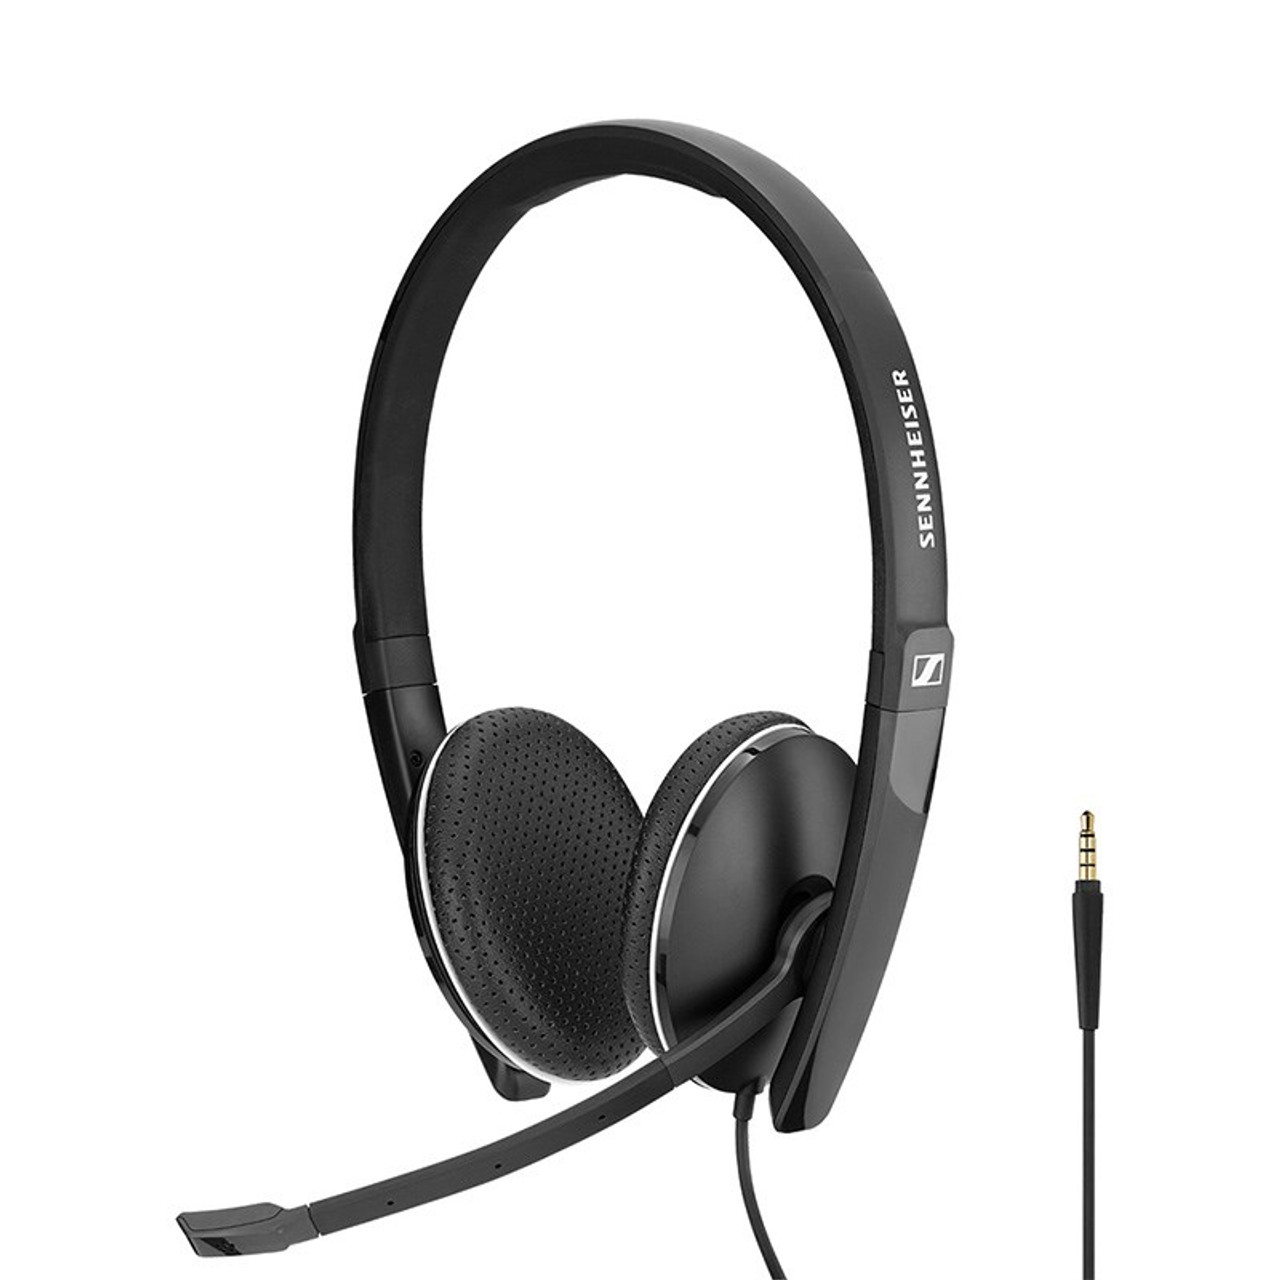 Image for Sennheiser SC 165 Stereo Headset with 3.5mm Jack CX Computer Superstore